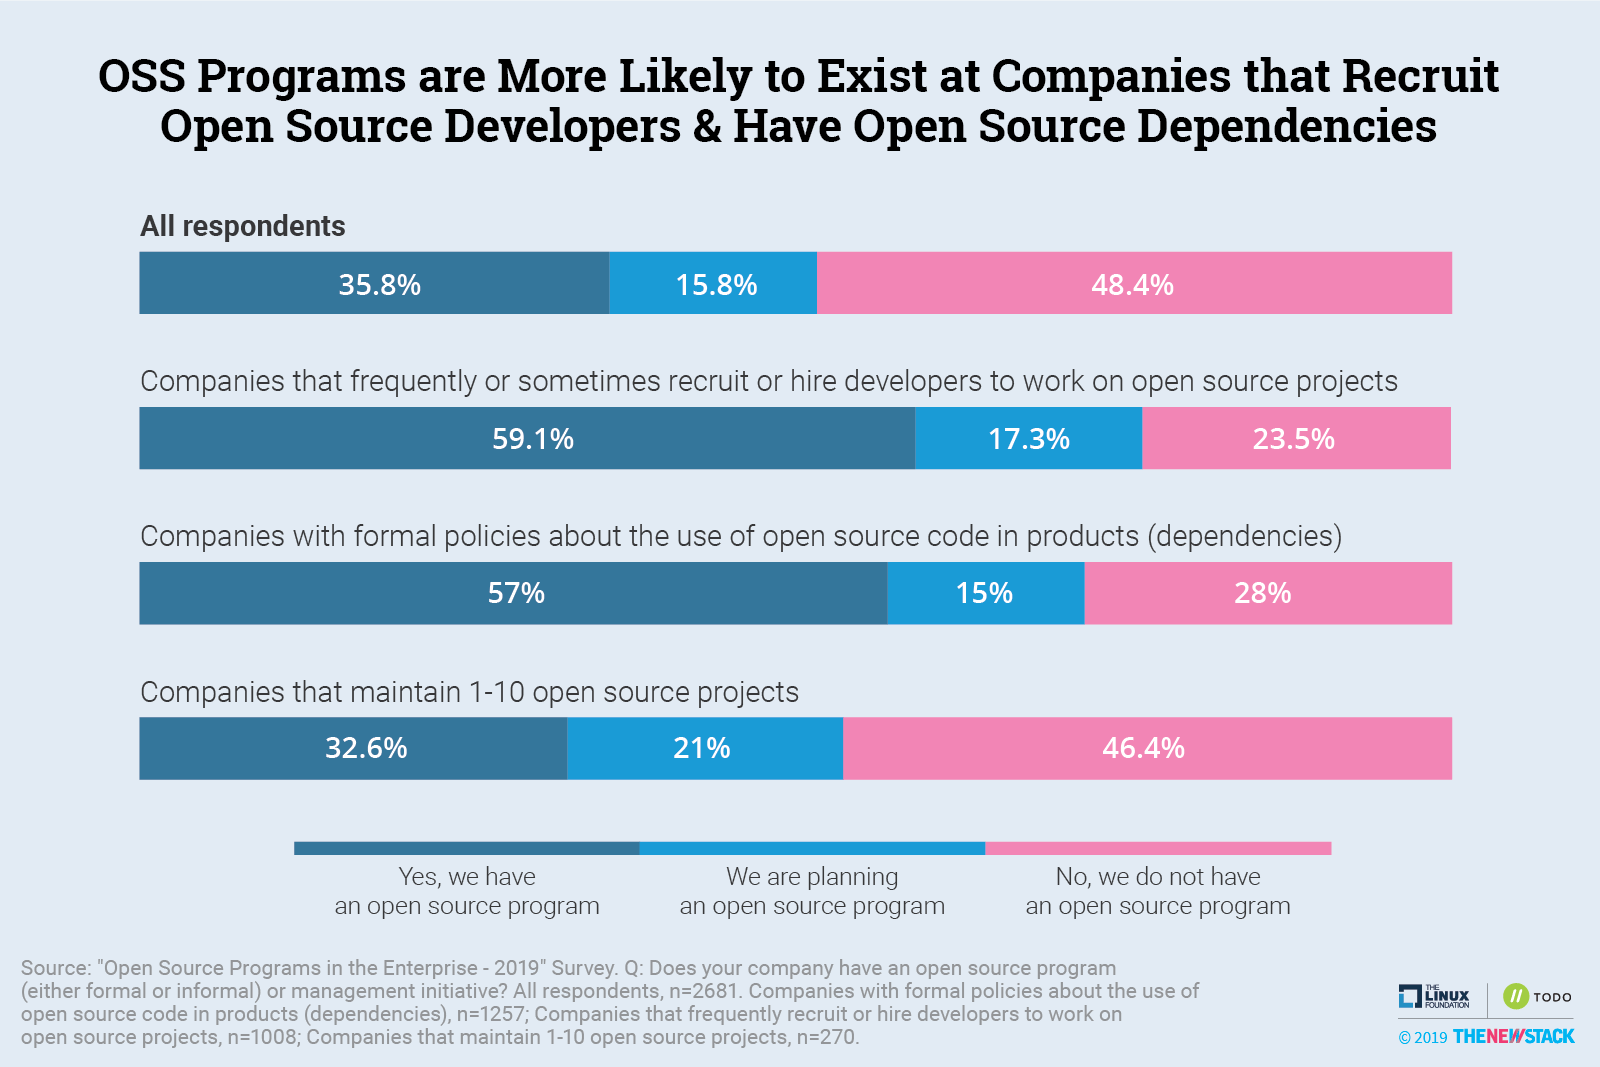 OSS Programs are More Likely to Exist at Companies that Recruit Open Source Developers & Have Open Source Dependencies